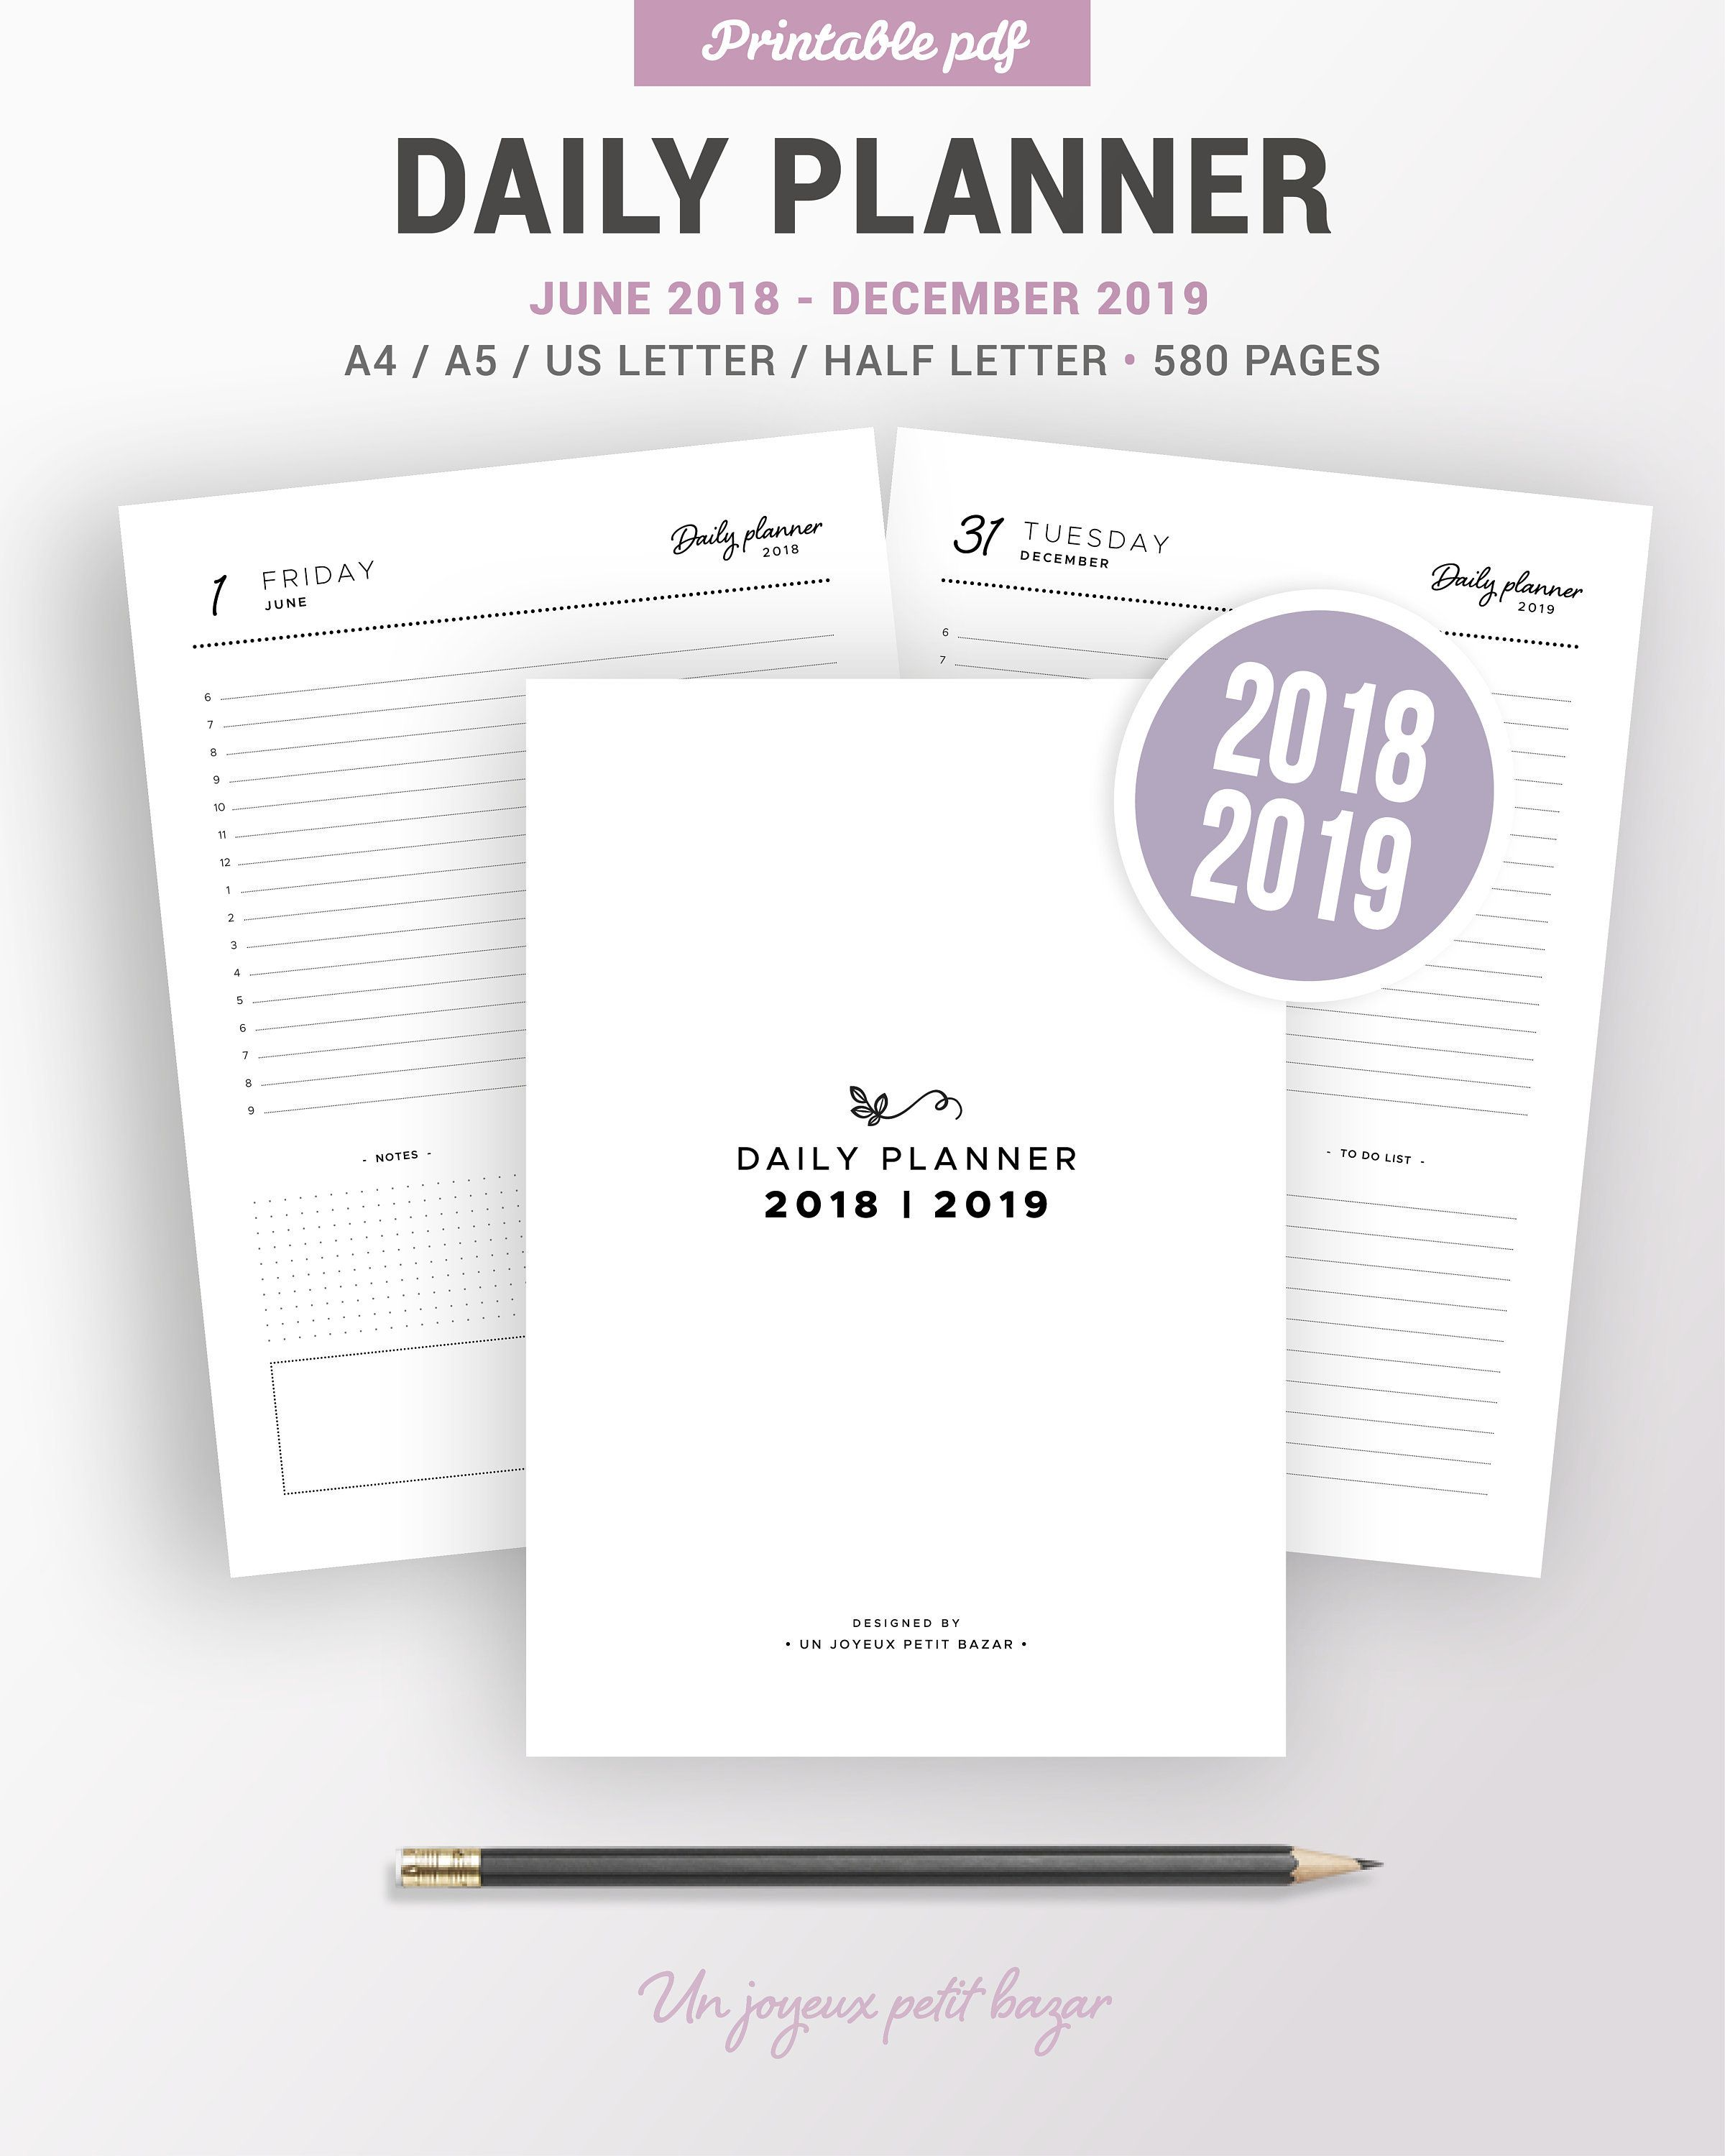 2018 2019 Daily Agenda Printable 2018 2019 Daily Planner Daily Diary 580 Pages Day On 1 Page Do1p Daily Planner Printable Planner Daily Planner Printable